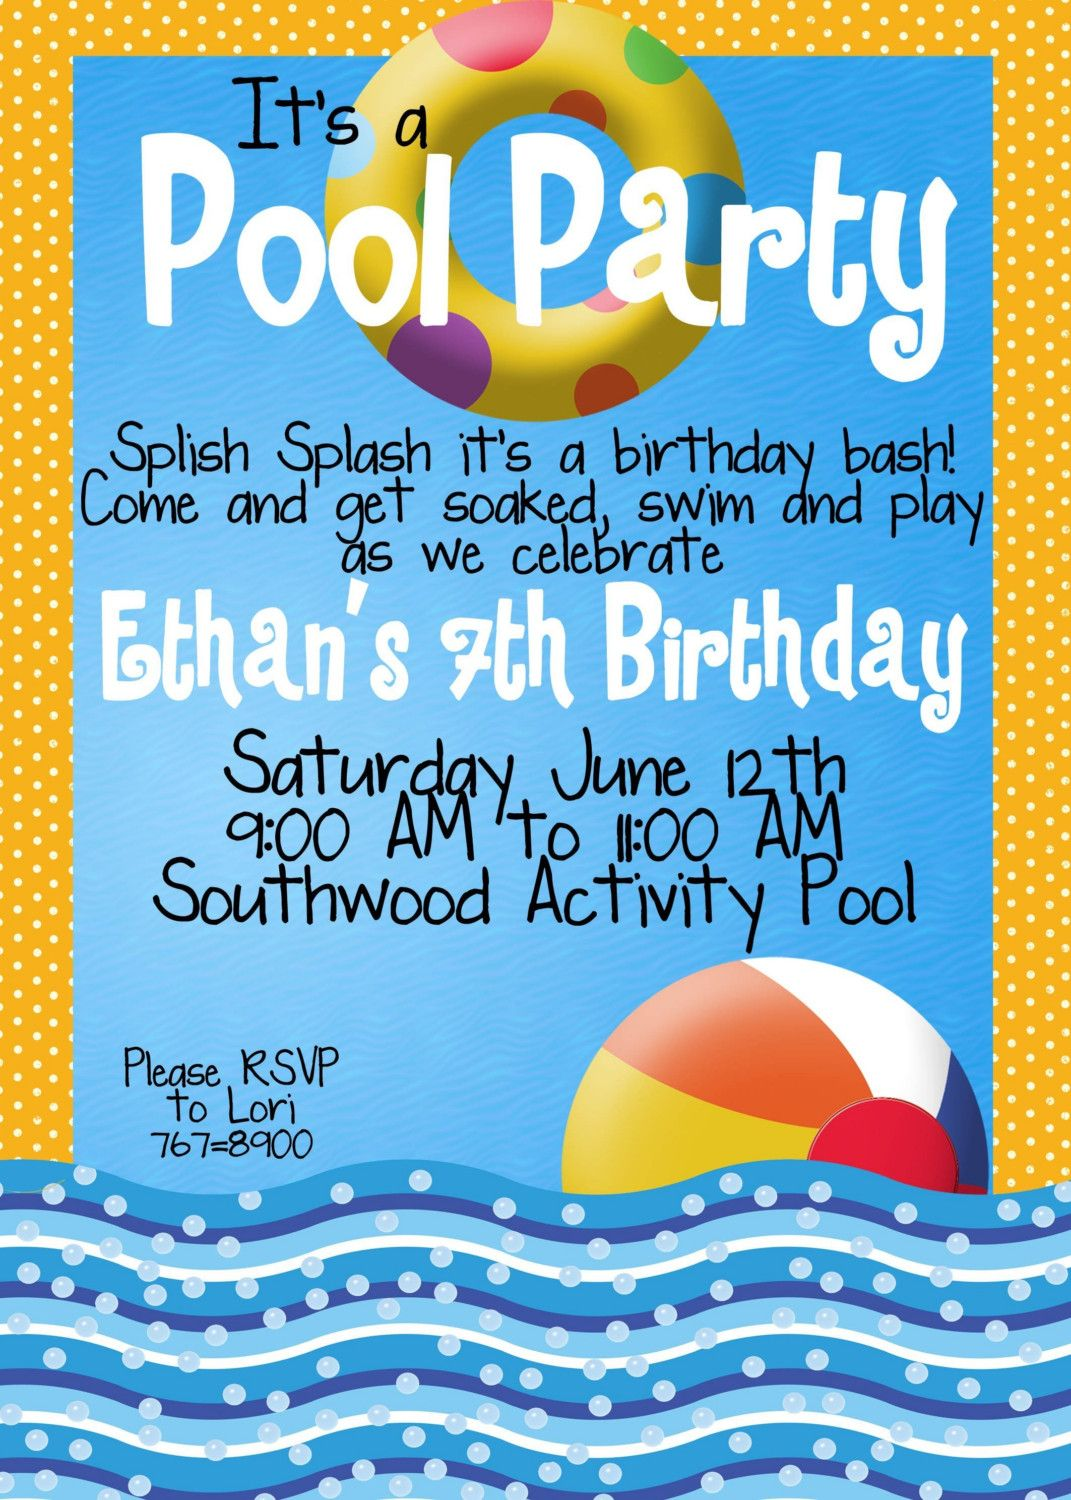 pool party invitations  pool party invitationsmarcylauren on, invitation samples